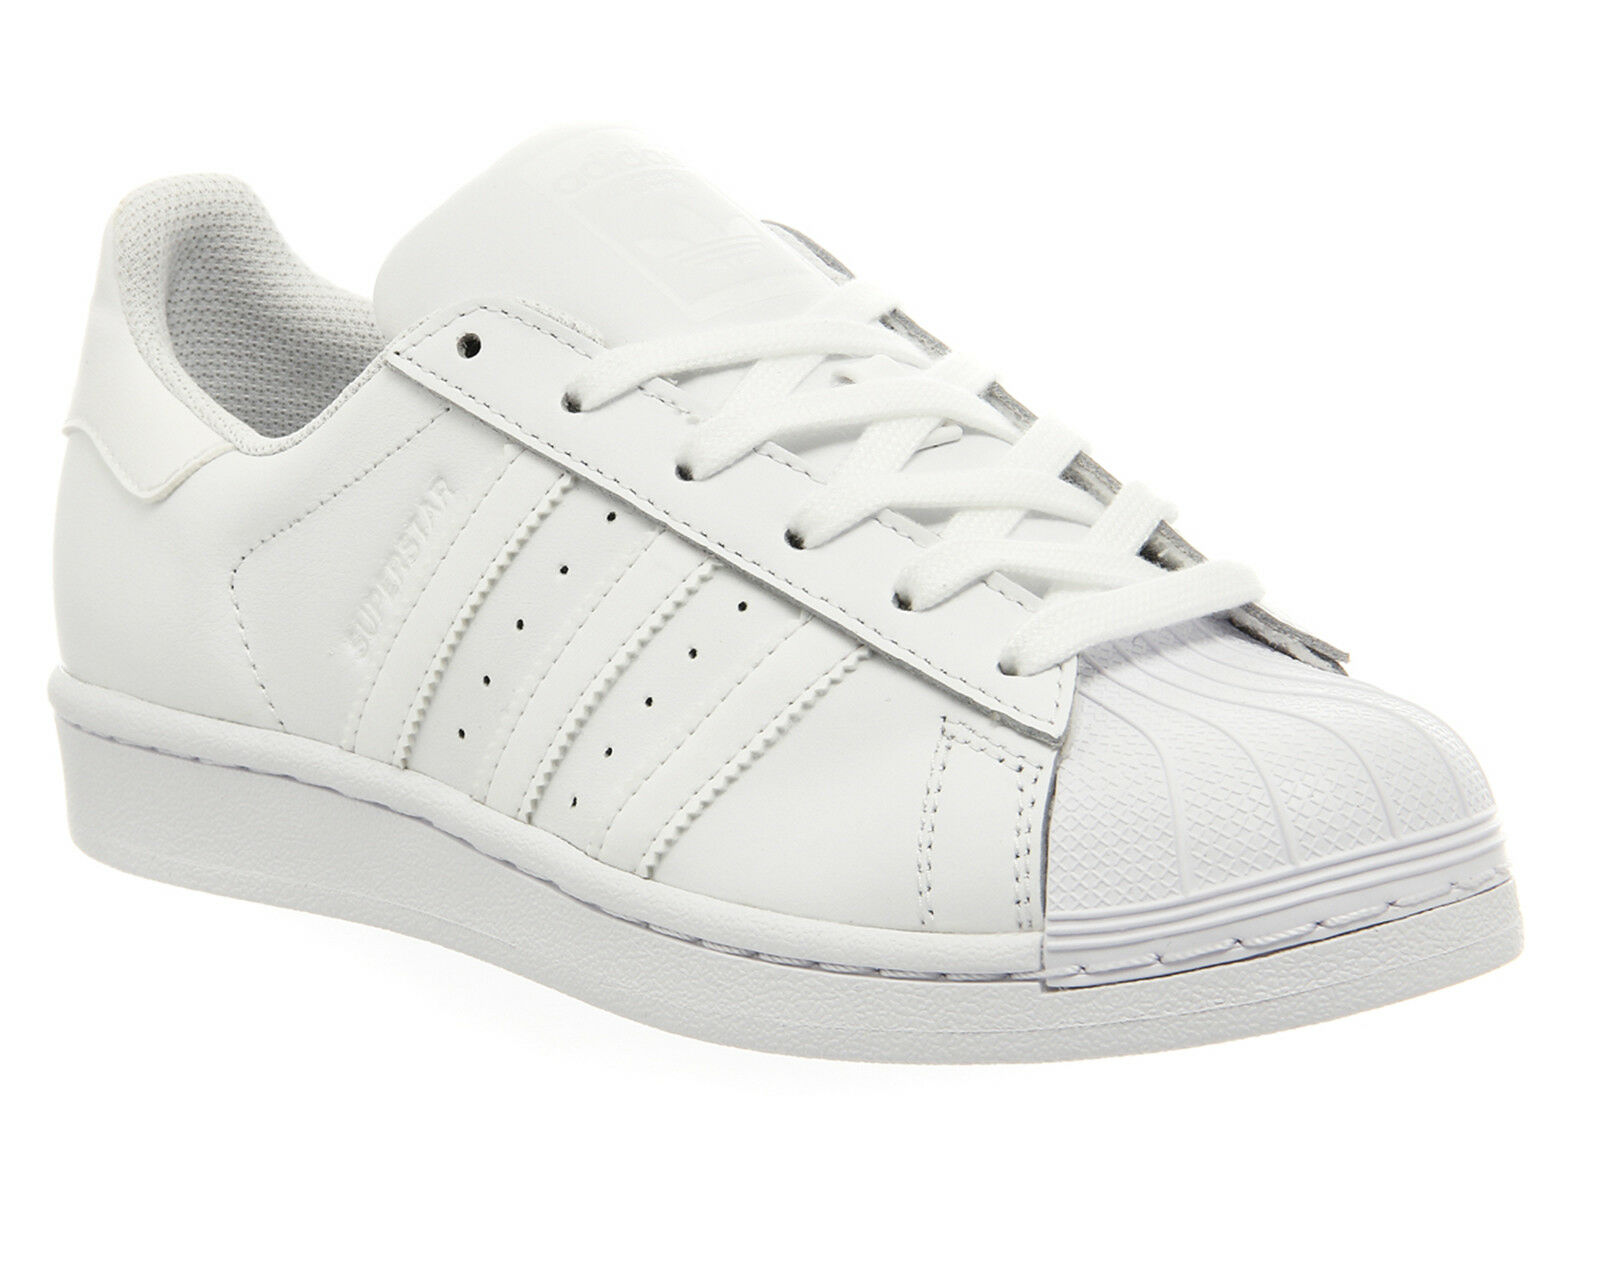 Mens Adidas Superstar 1 White Mono Foundation Trainers shoes